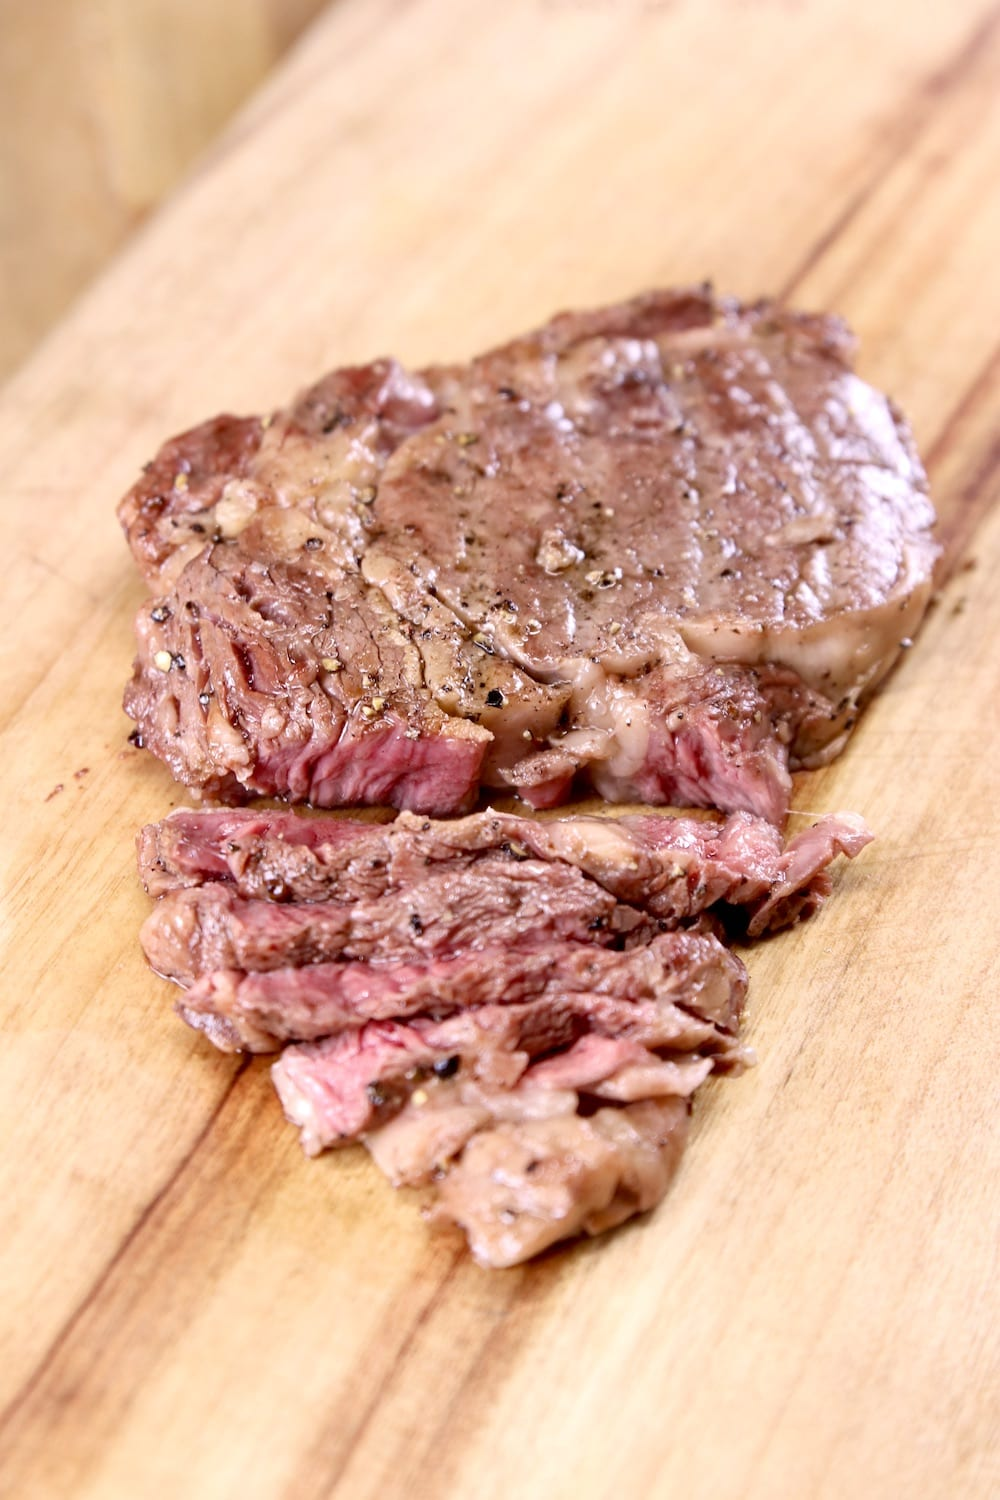 Grilled ribeye steak partially sliced on a cutting board